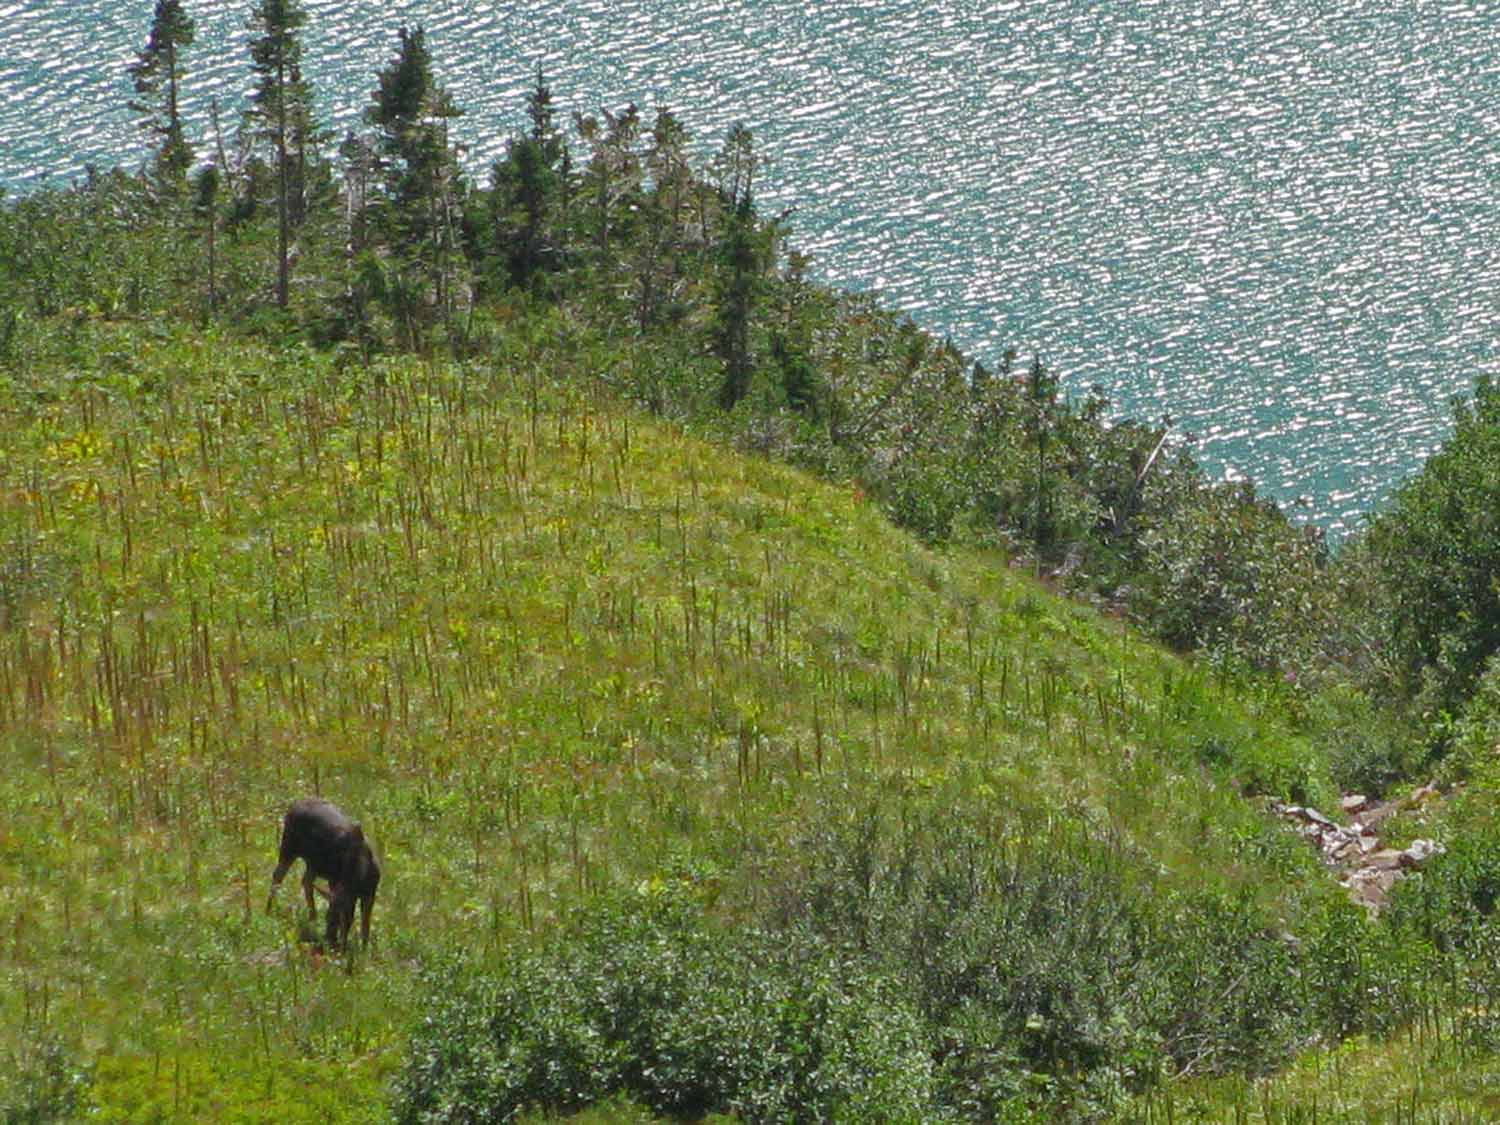 Miss Moose was off in the distance chowing down on the vegetation